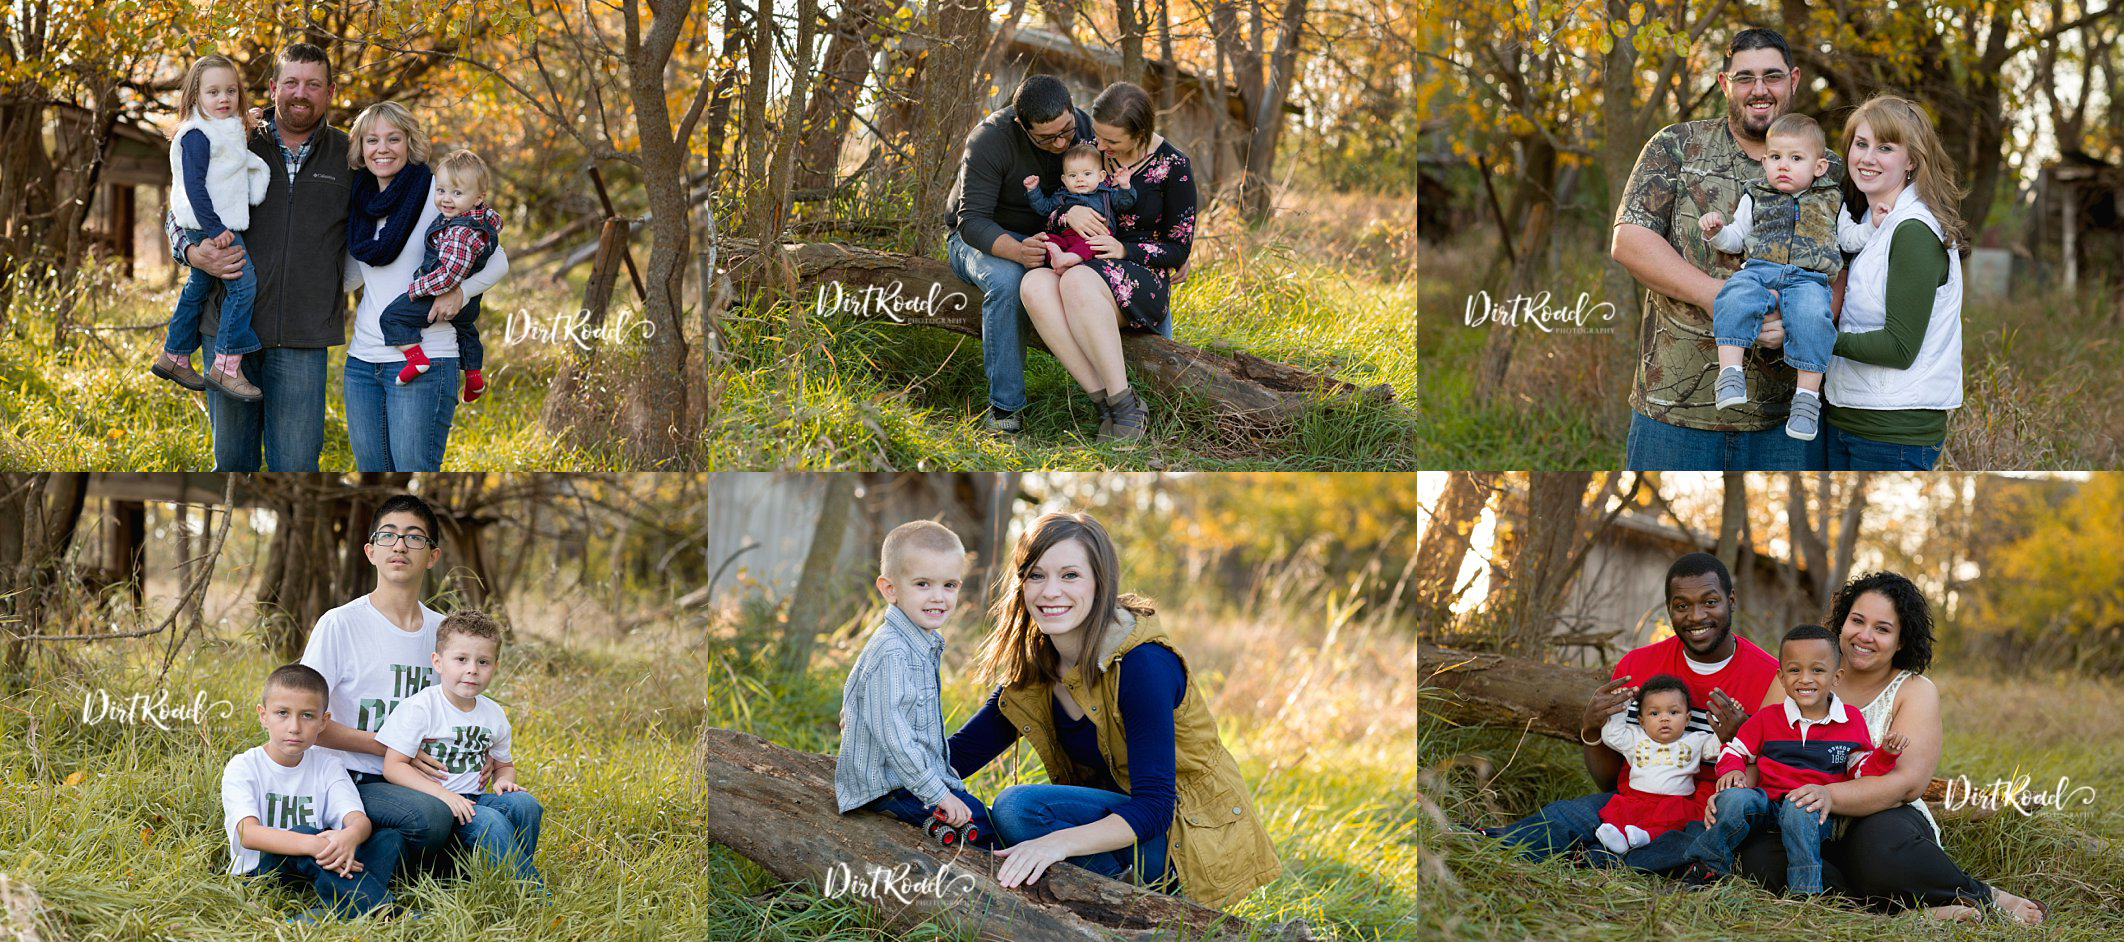 Midwest Nebraska Photographer, Midwest Photographer, Nebraska Family Session, Nebraska Farm Photographer, Family On Farm, Kids Laughter Photos, Nebraska Photographer, Nebraska Newborn Photographer, Nebraska Family Photographer, Nebraska Senior Photographer, Nebraska Child Photographer, Wilber Nebraska, Dorchester Nebraska, Crete Nebraska, Friend Nebraska, DeWitt Nebraska, Plymouth Nebraska, Roca Nebraska, Sprague Nebraska, Martell Nebraska, Kramer Nebraska, Lincoln Nebraska, Milford Nebraska, Wilber Nebraska Photographer, Dorchester Nebraska Photographer, Crete Nebraska Photographer, Friend Nebraska Photographer, DeWitt Nebraska Photographer, Plymouth Nebraska Photographer, Roca Nebraska Photographer, Sprague Nebraska Photographer, Martell Nebraska Photographer, Kramer Nebraska Photographer, Lincoln Nebraska Photographer, Milford Nebraska Photographer